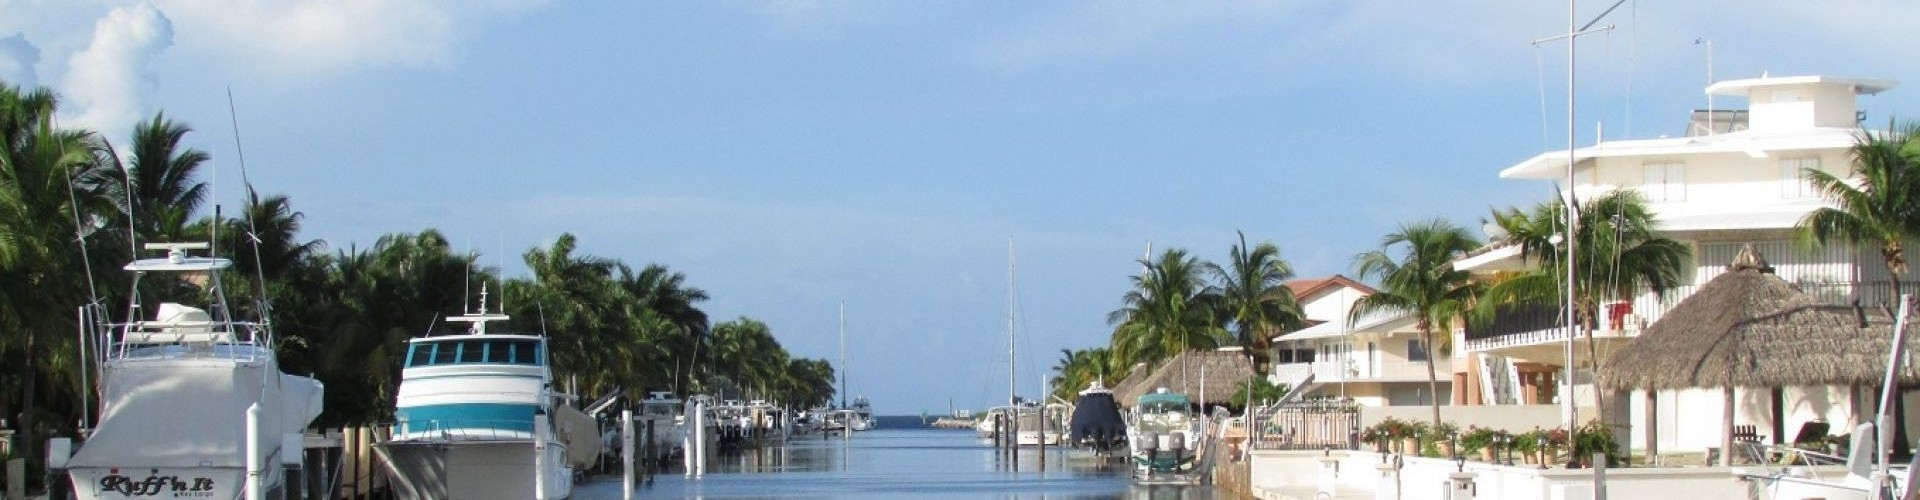 1- Key Largo, Florida